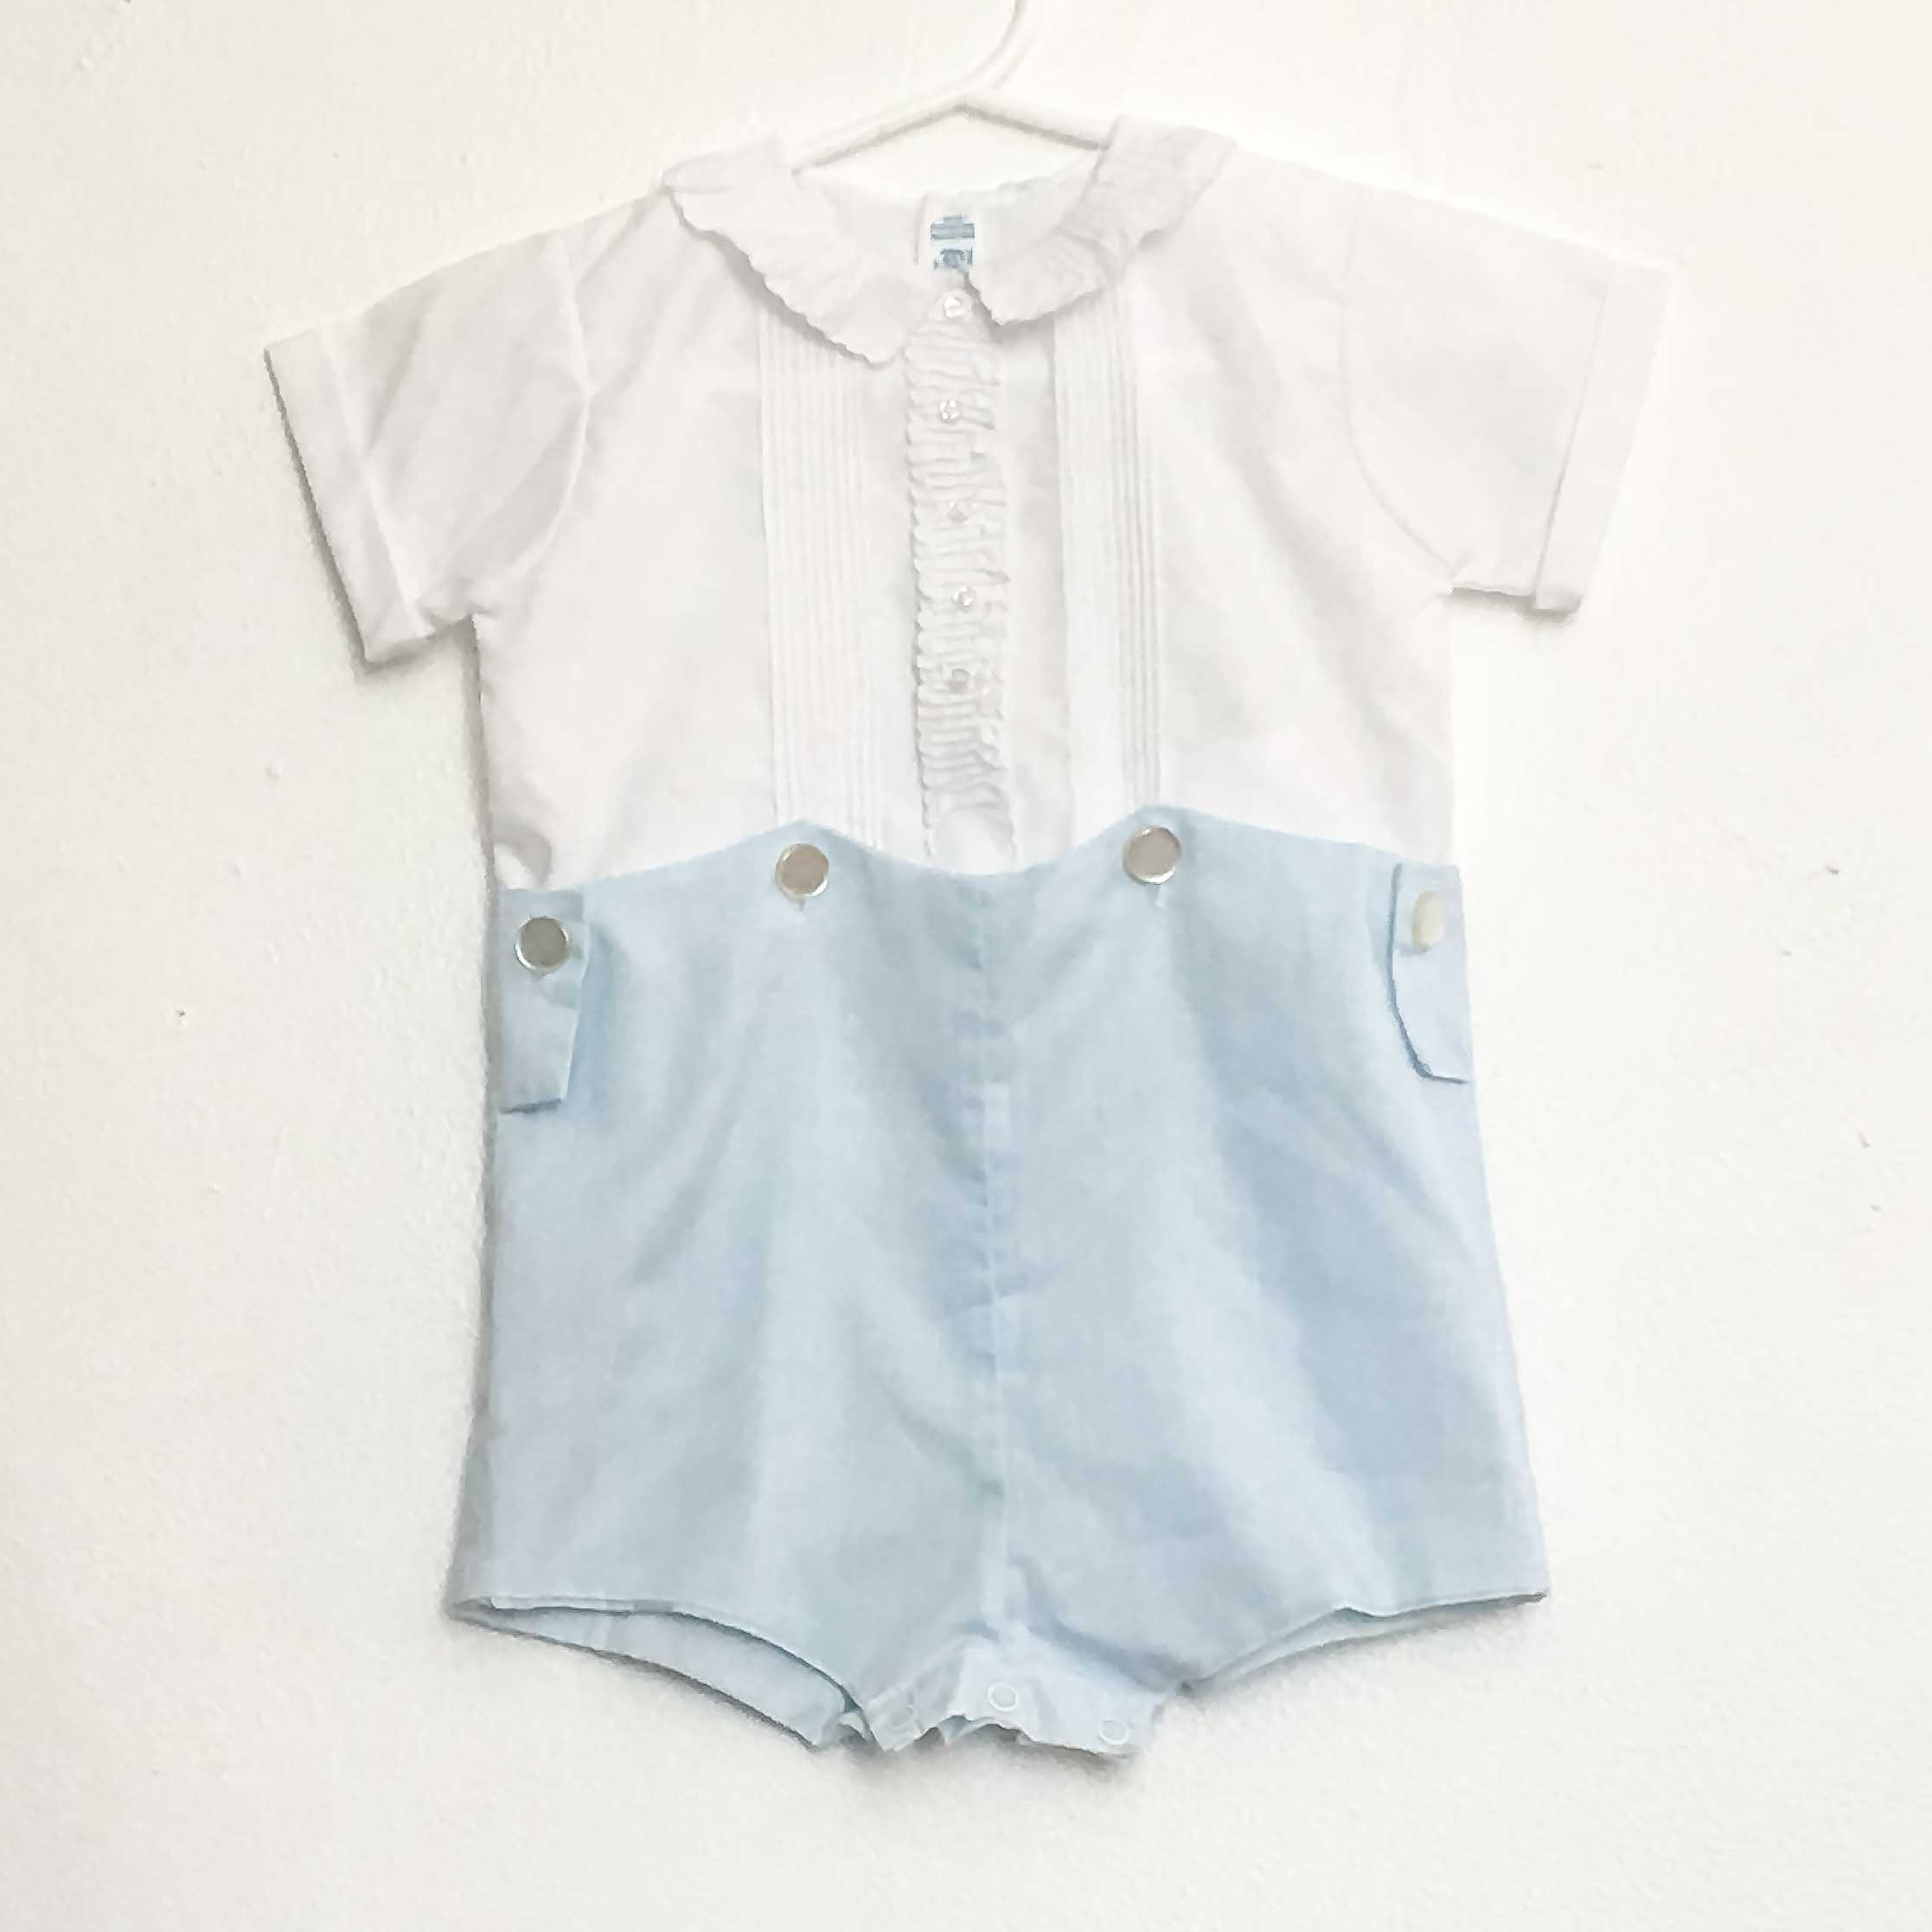 ORPCLOTHES-49.jpg